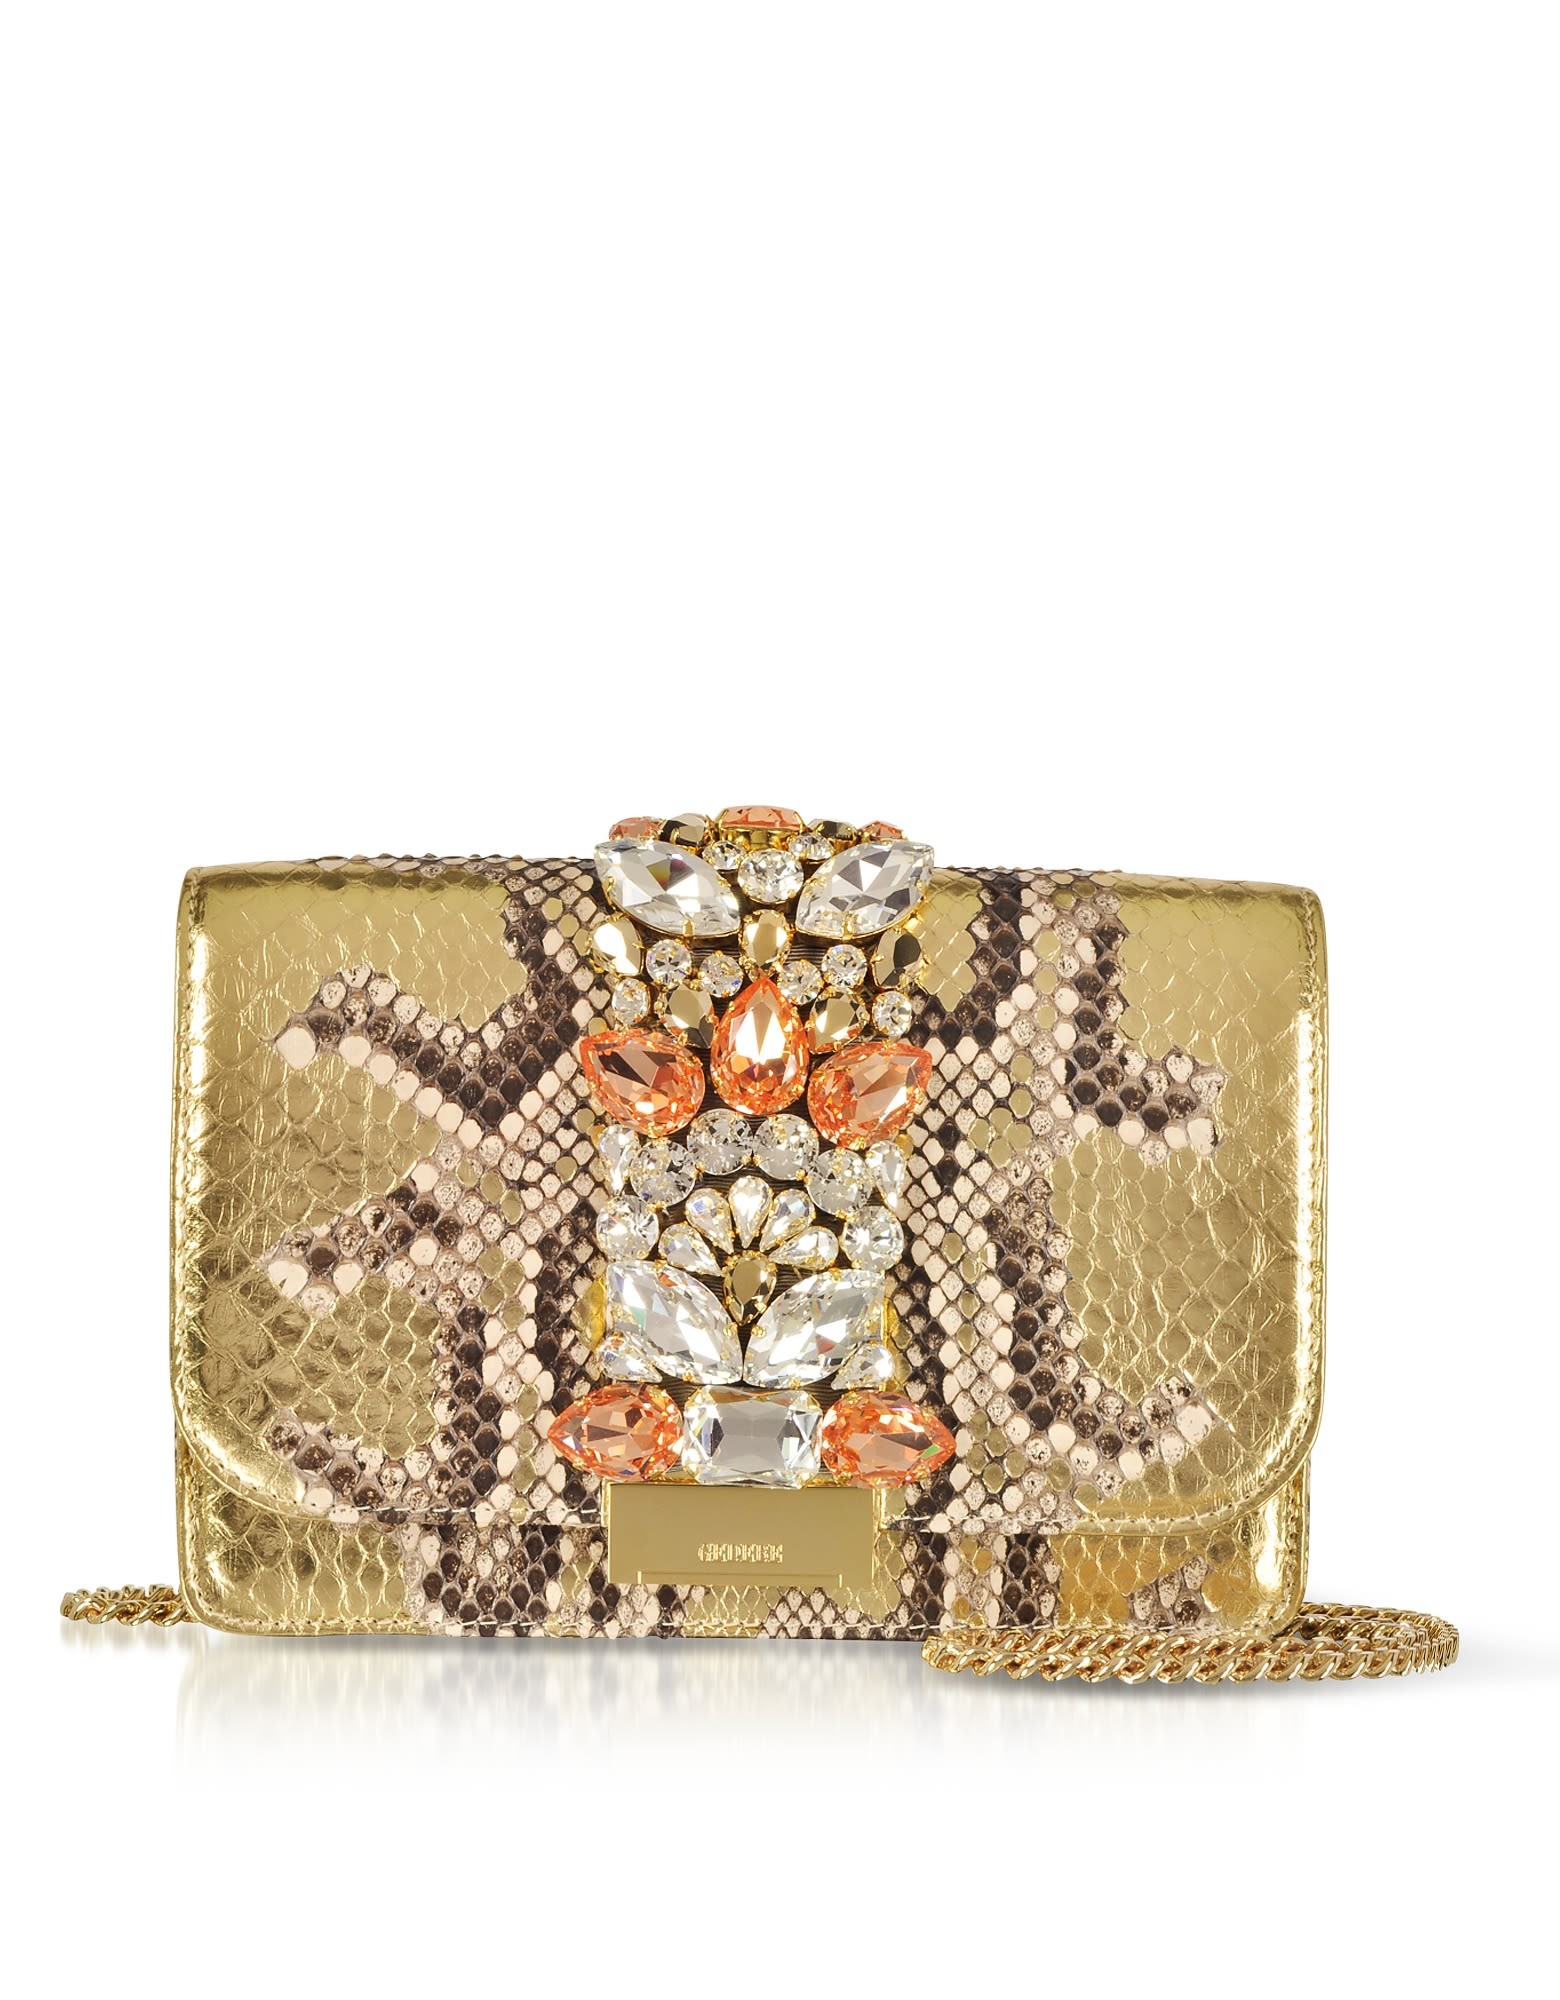 GEDEBE CLIKY ROCCIA GOLD PYTHON CLUTCH W-CRYSTALS AND CHAIN STRAP